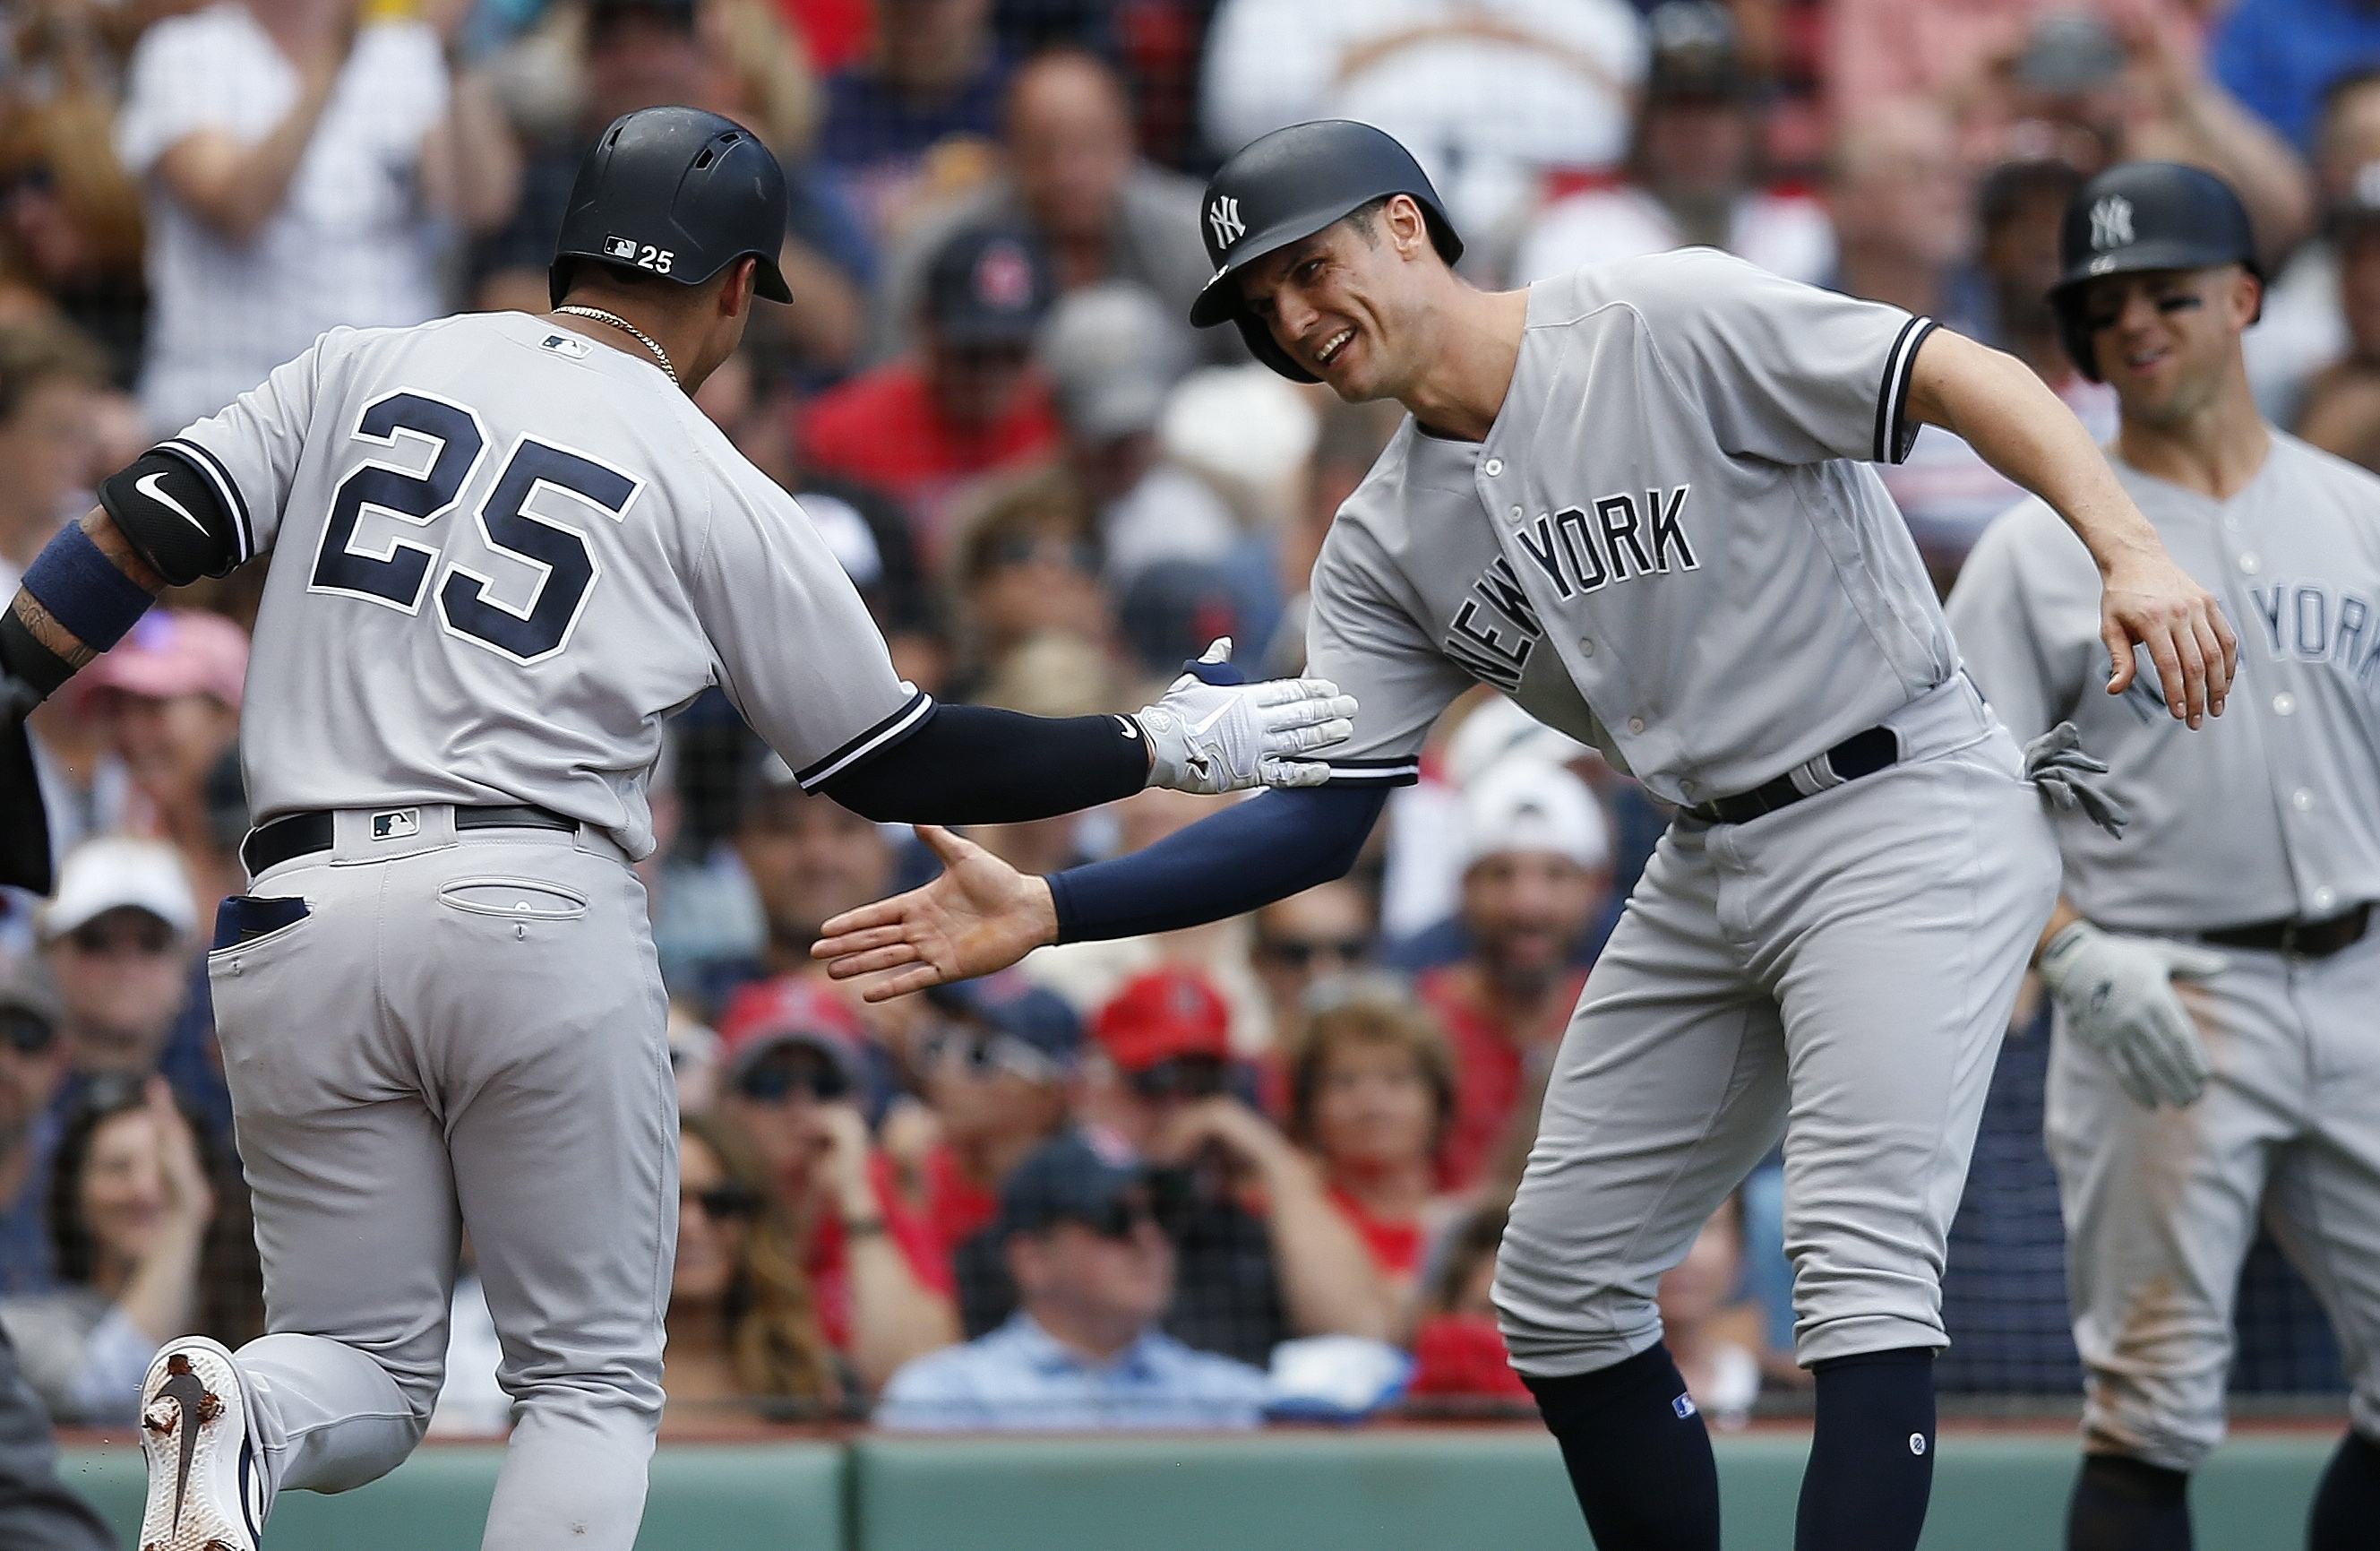 Torres hits Yankees' 265th homer, breaking record vs Red Sox